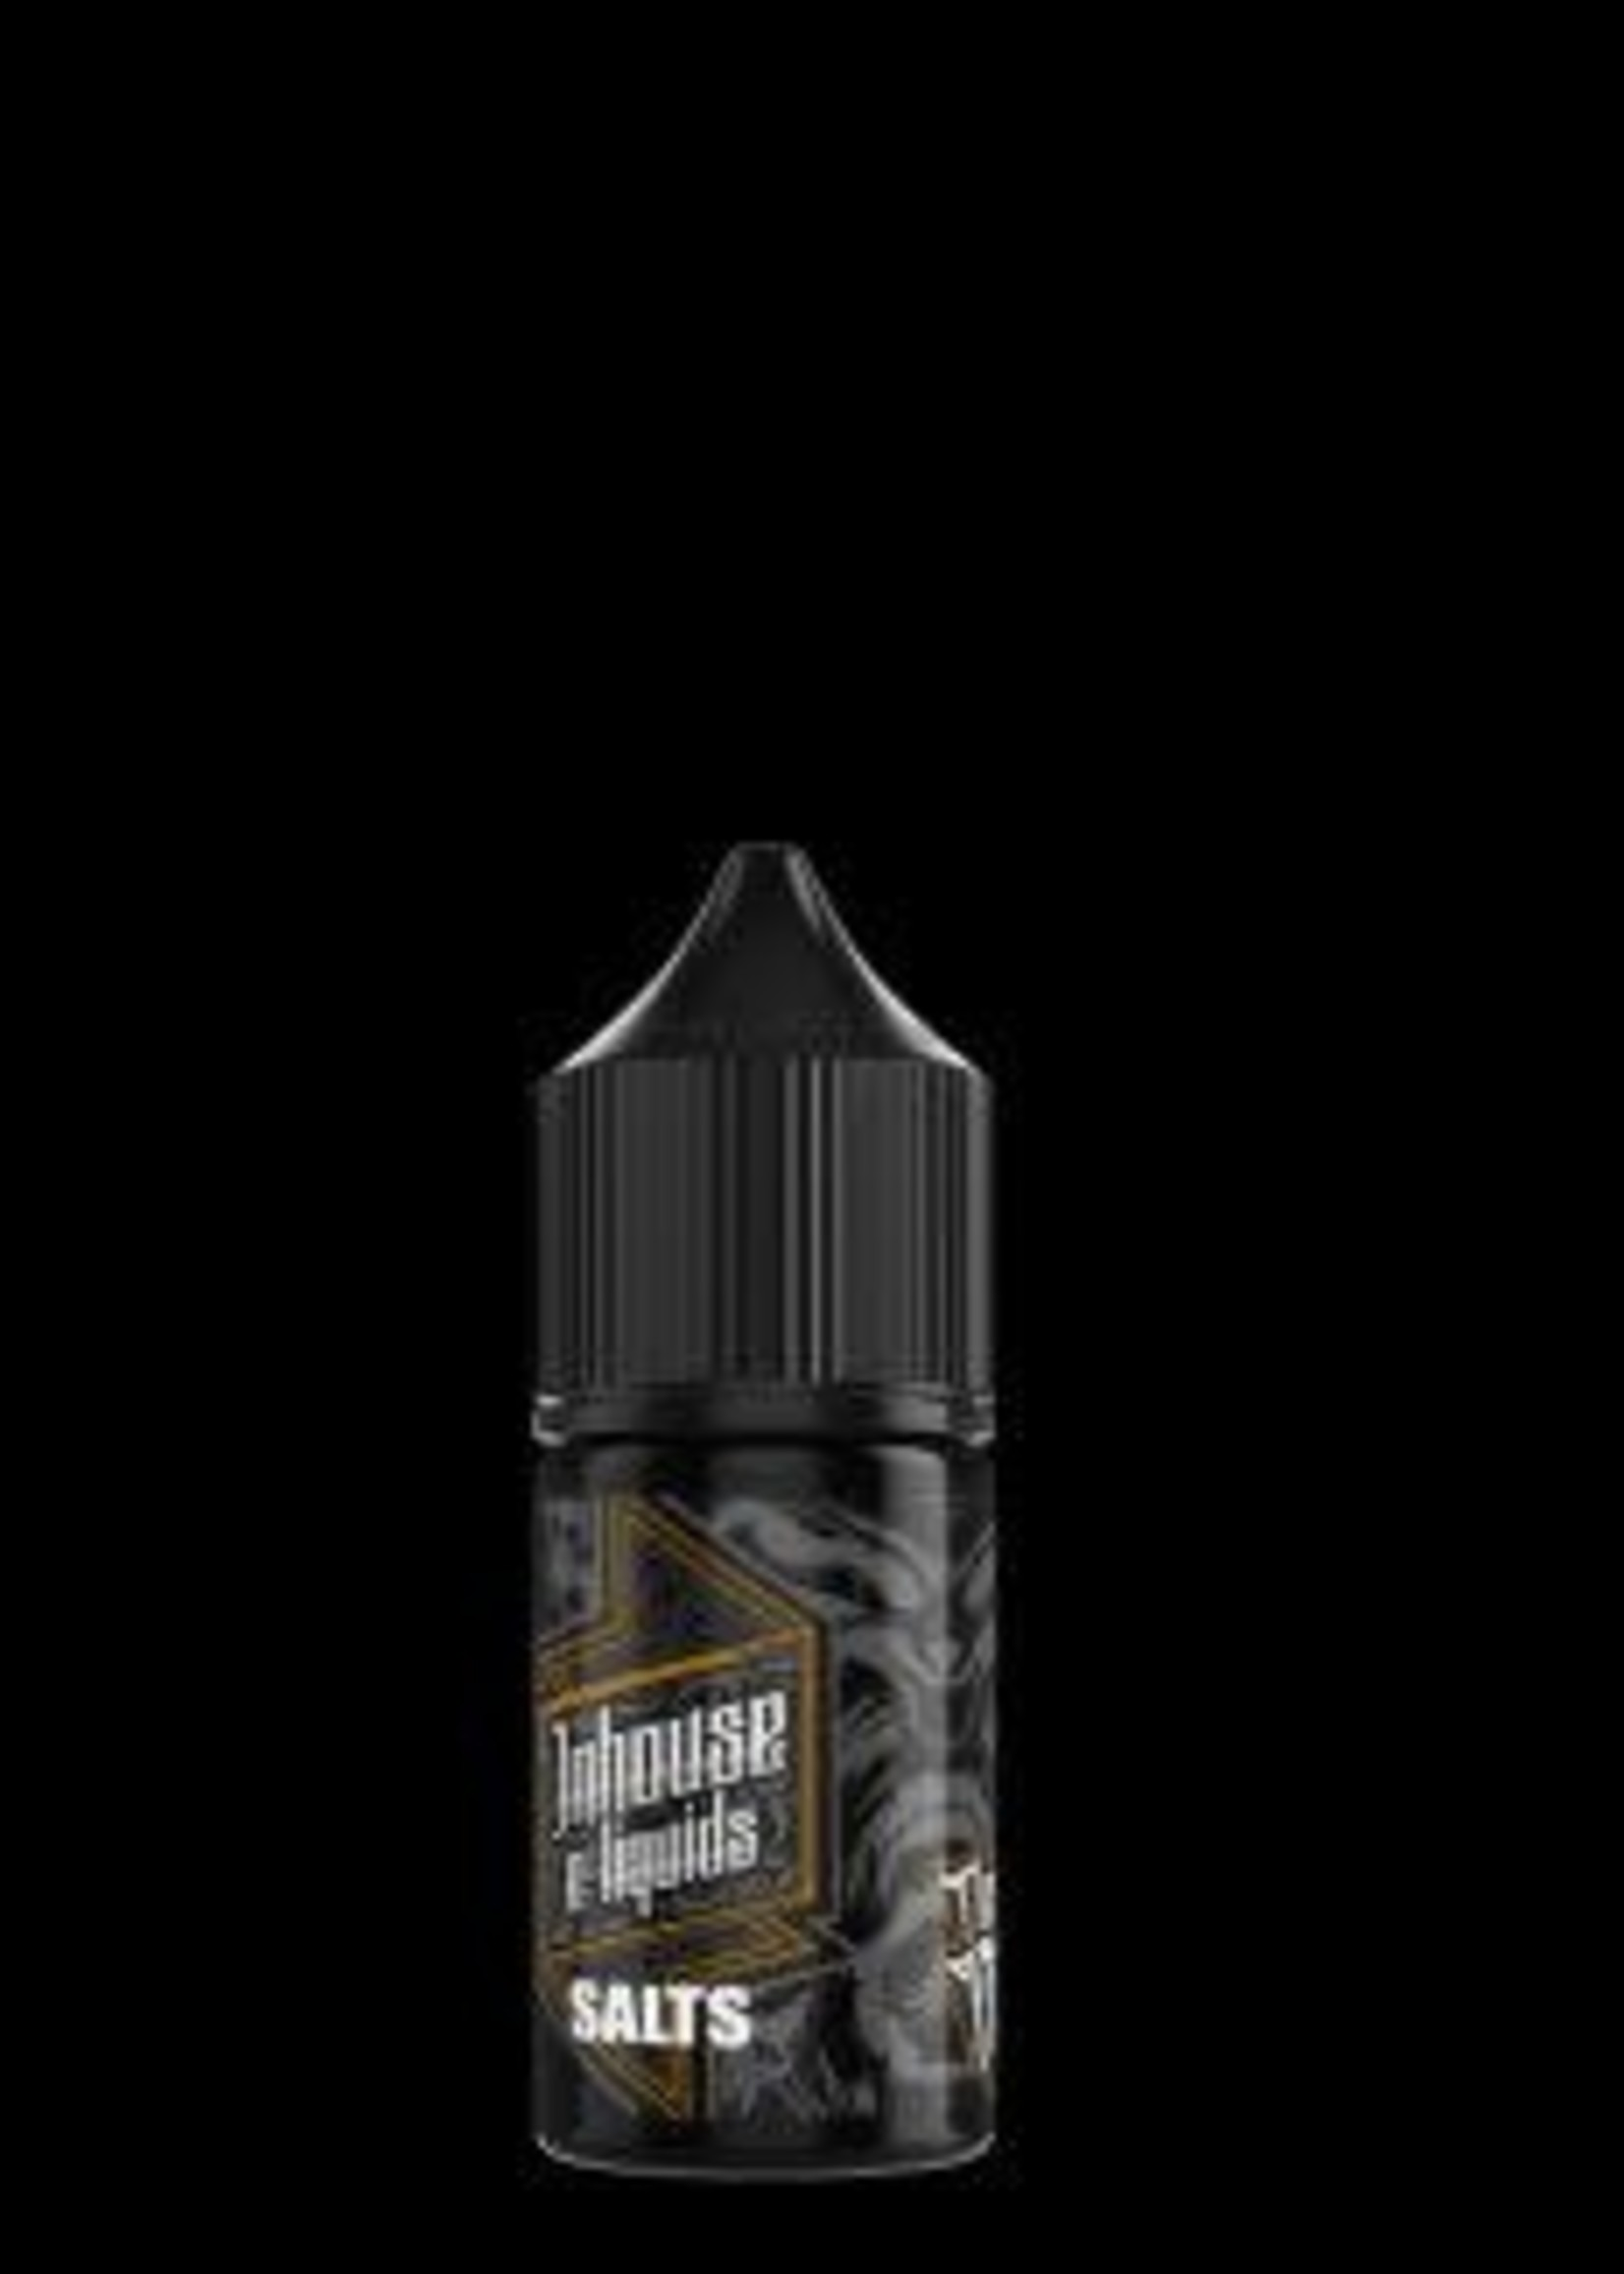 Vape flavour - The toffee salts 30ml- 40mg